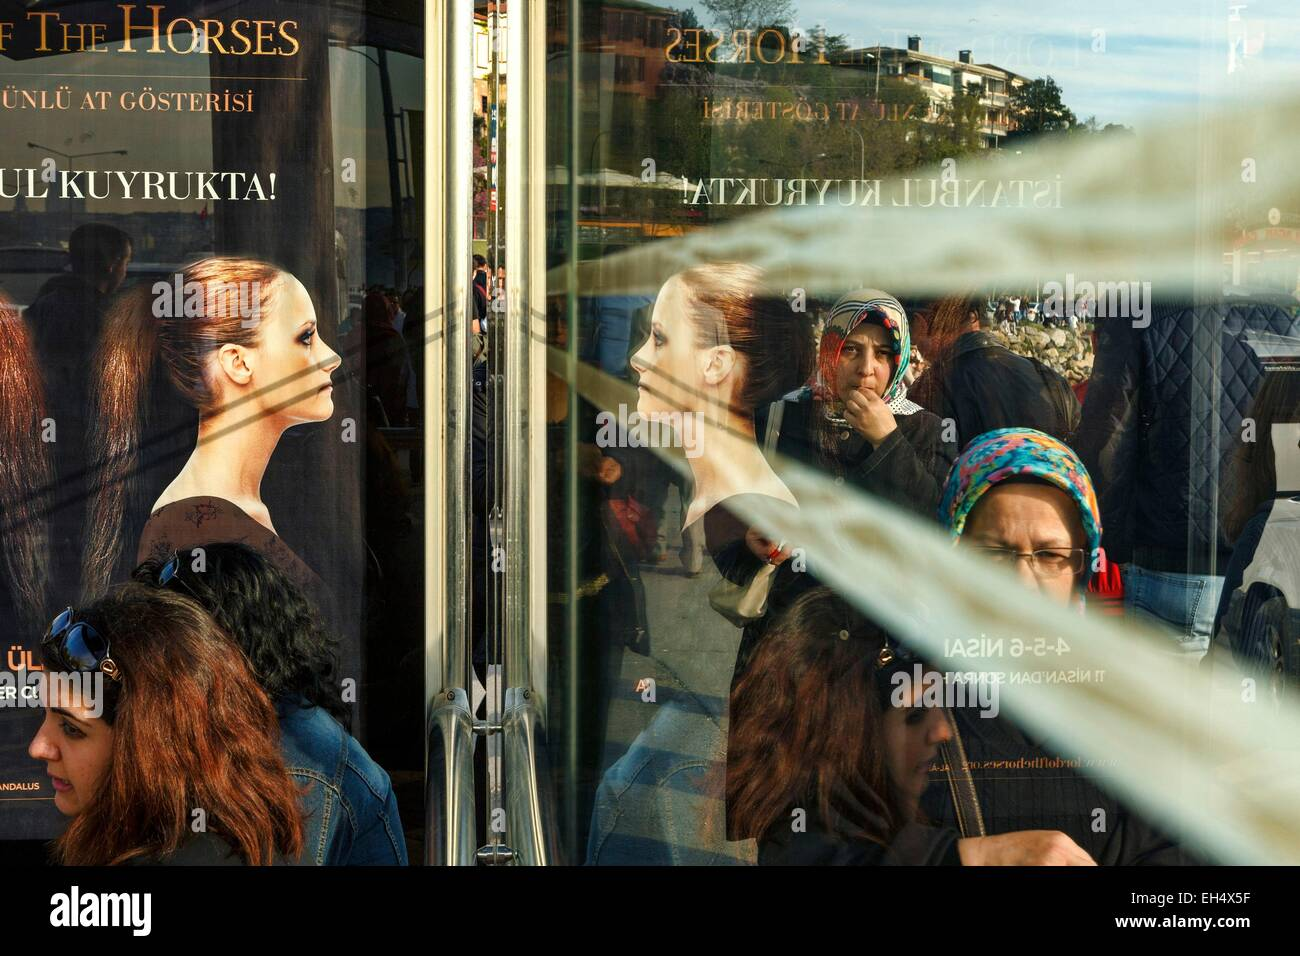 Turkey, Istanbul, Uskudar district, persons on a bus stop on the banks of the Bosphorus - Stock Image